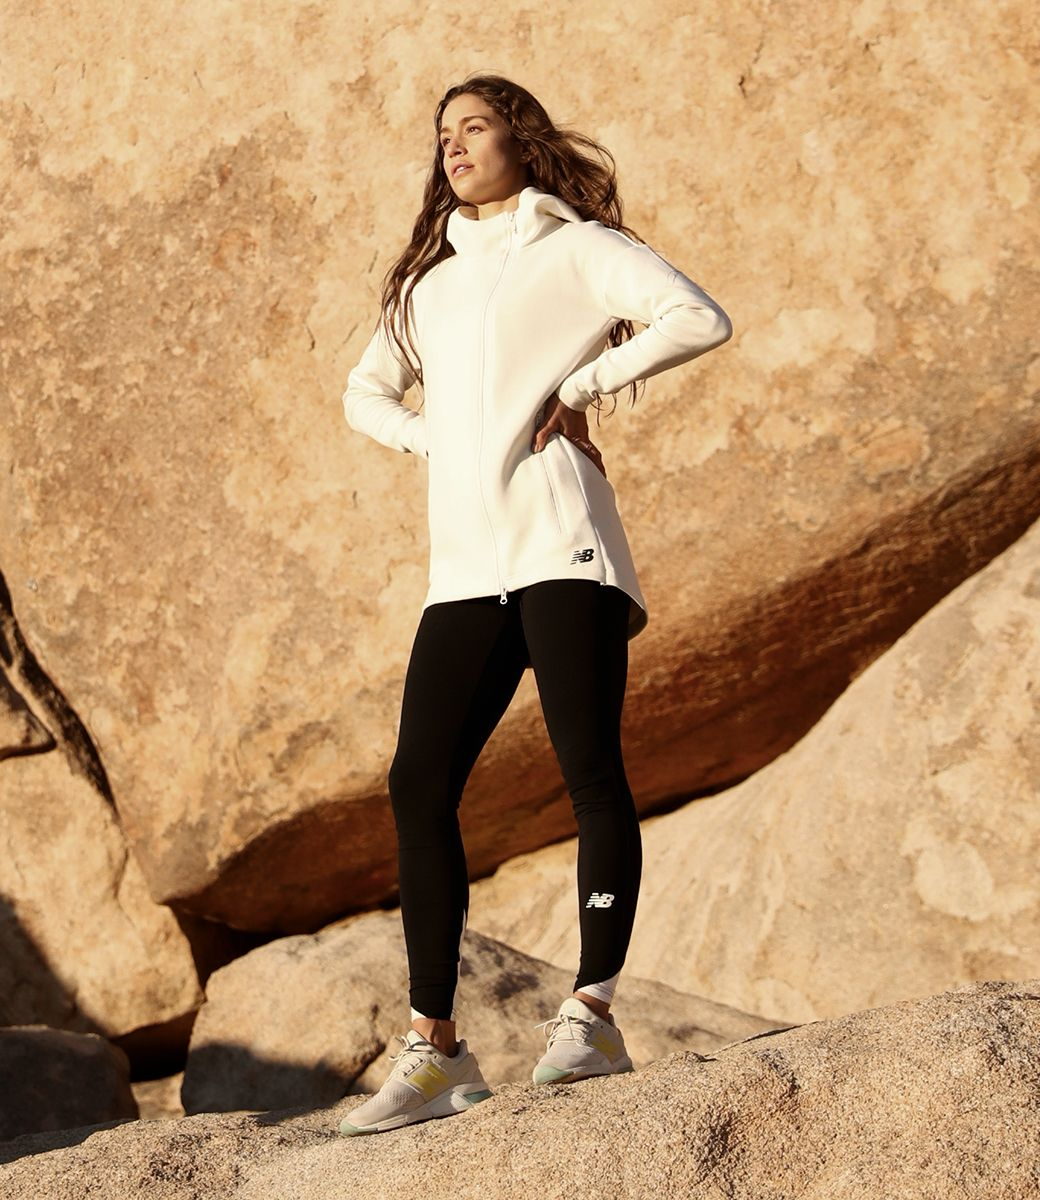 New Balance US Womens Catalog Cover Email,